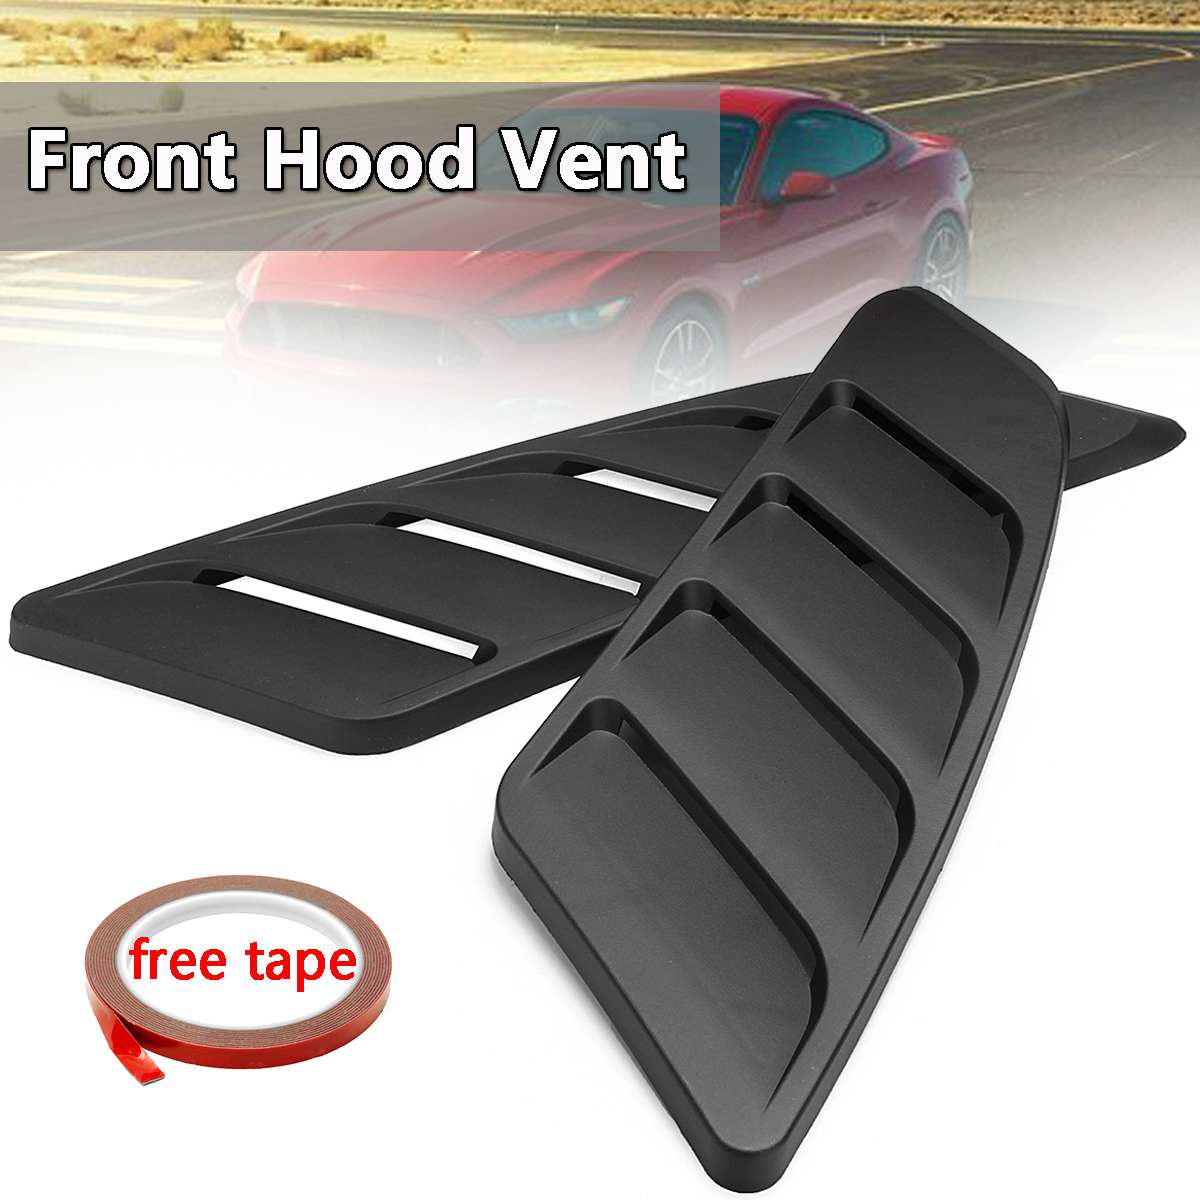 2x Universal Car Air Intake Scoop Bonnet Hood Vent Front Hood Vent For 2015 2017 For Ford For Mustang Panel Trim Black